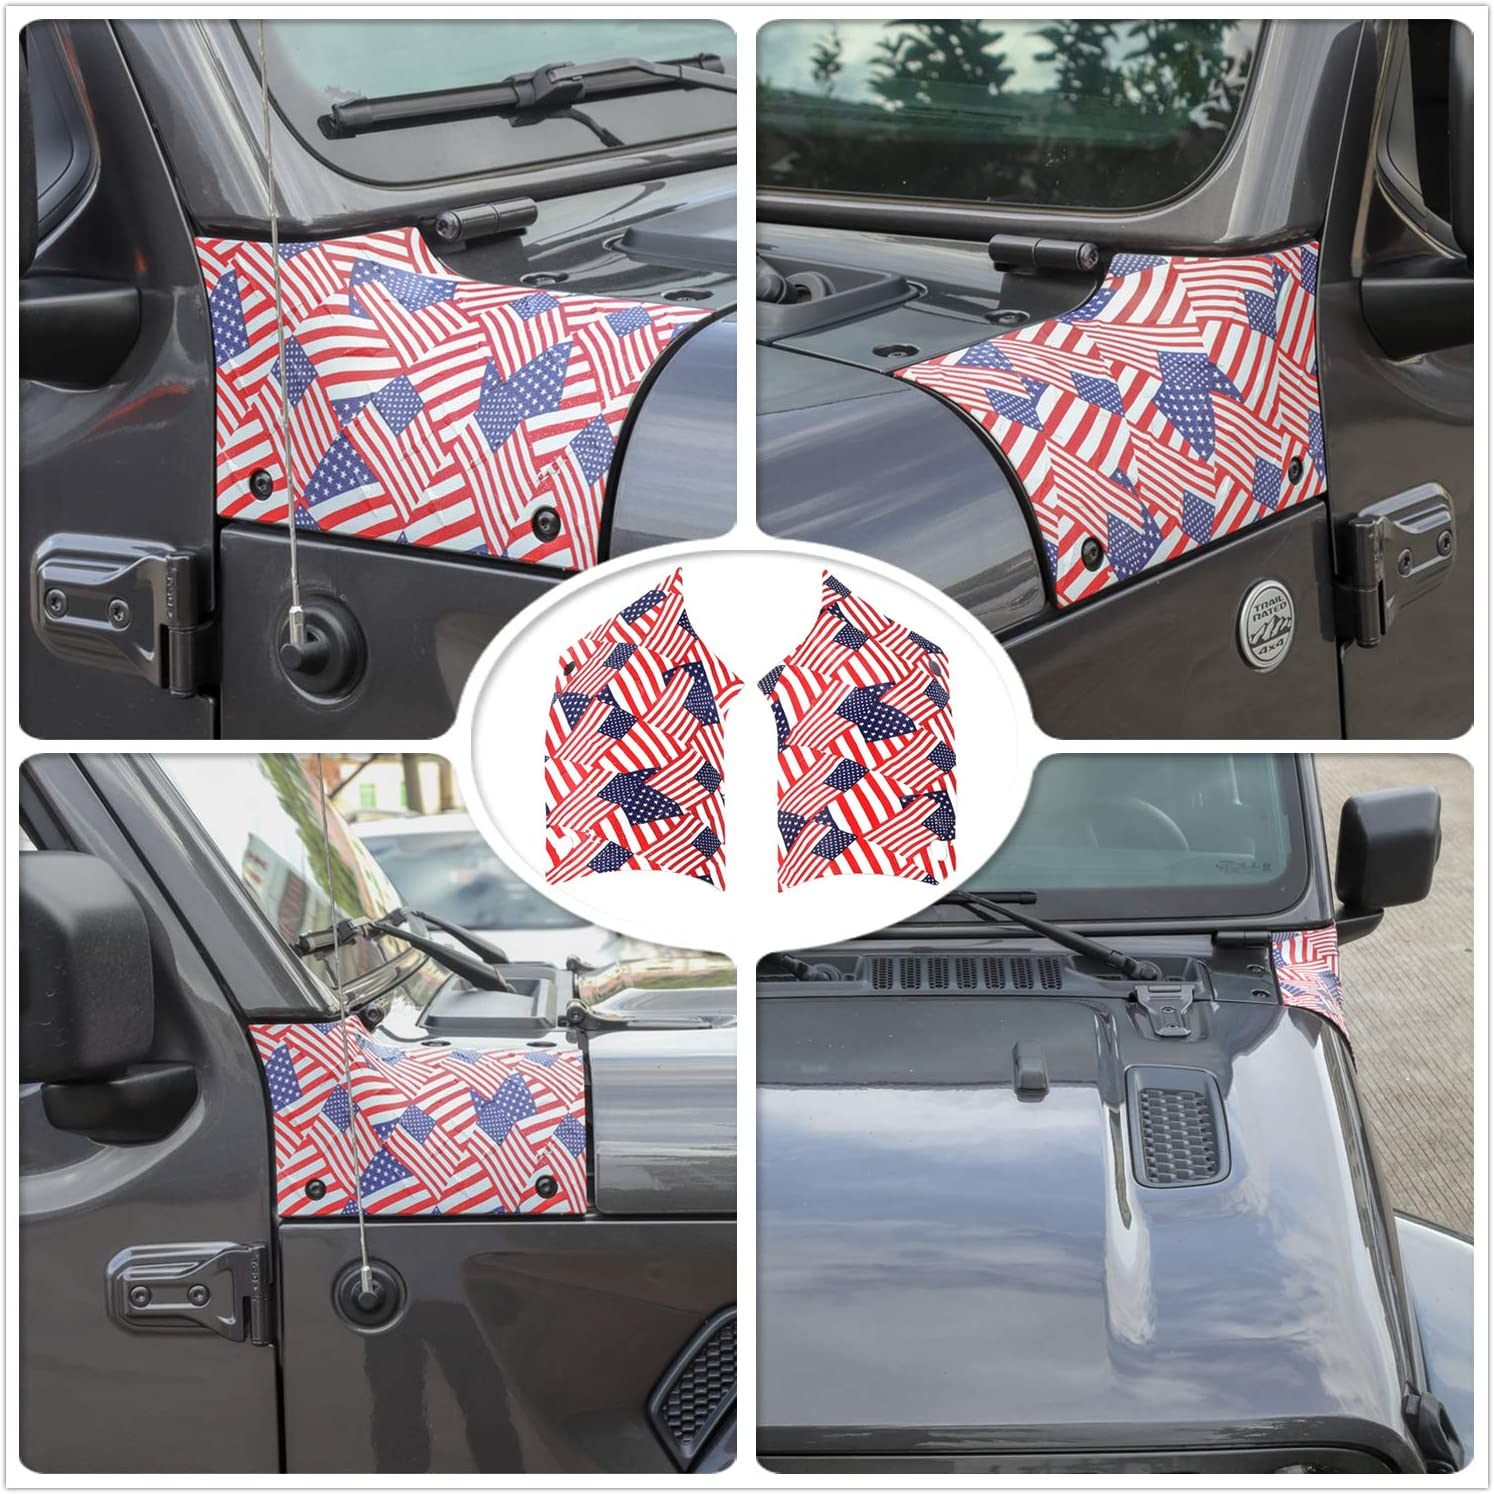 YOCTM Multicolour American Flag Side Cowl Body Armor Cover for 2018 2019 2020 Jeep Wrangler JL & Wrangler Unlimited Accessories 2/4 door - Pair